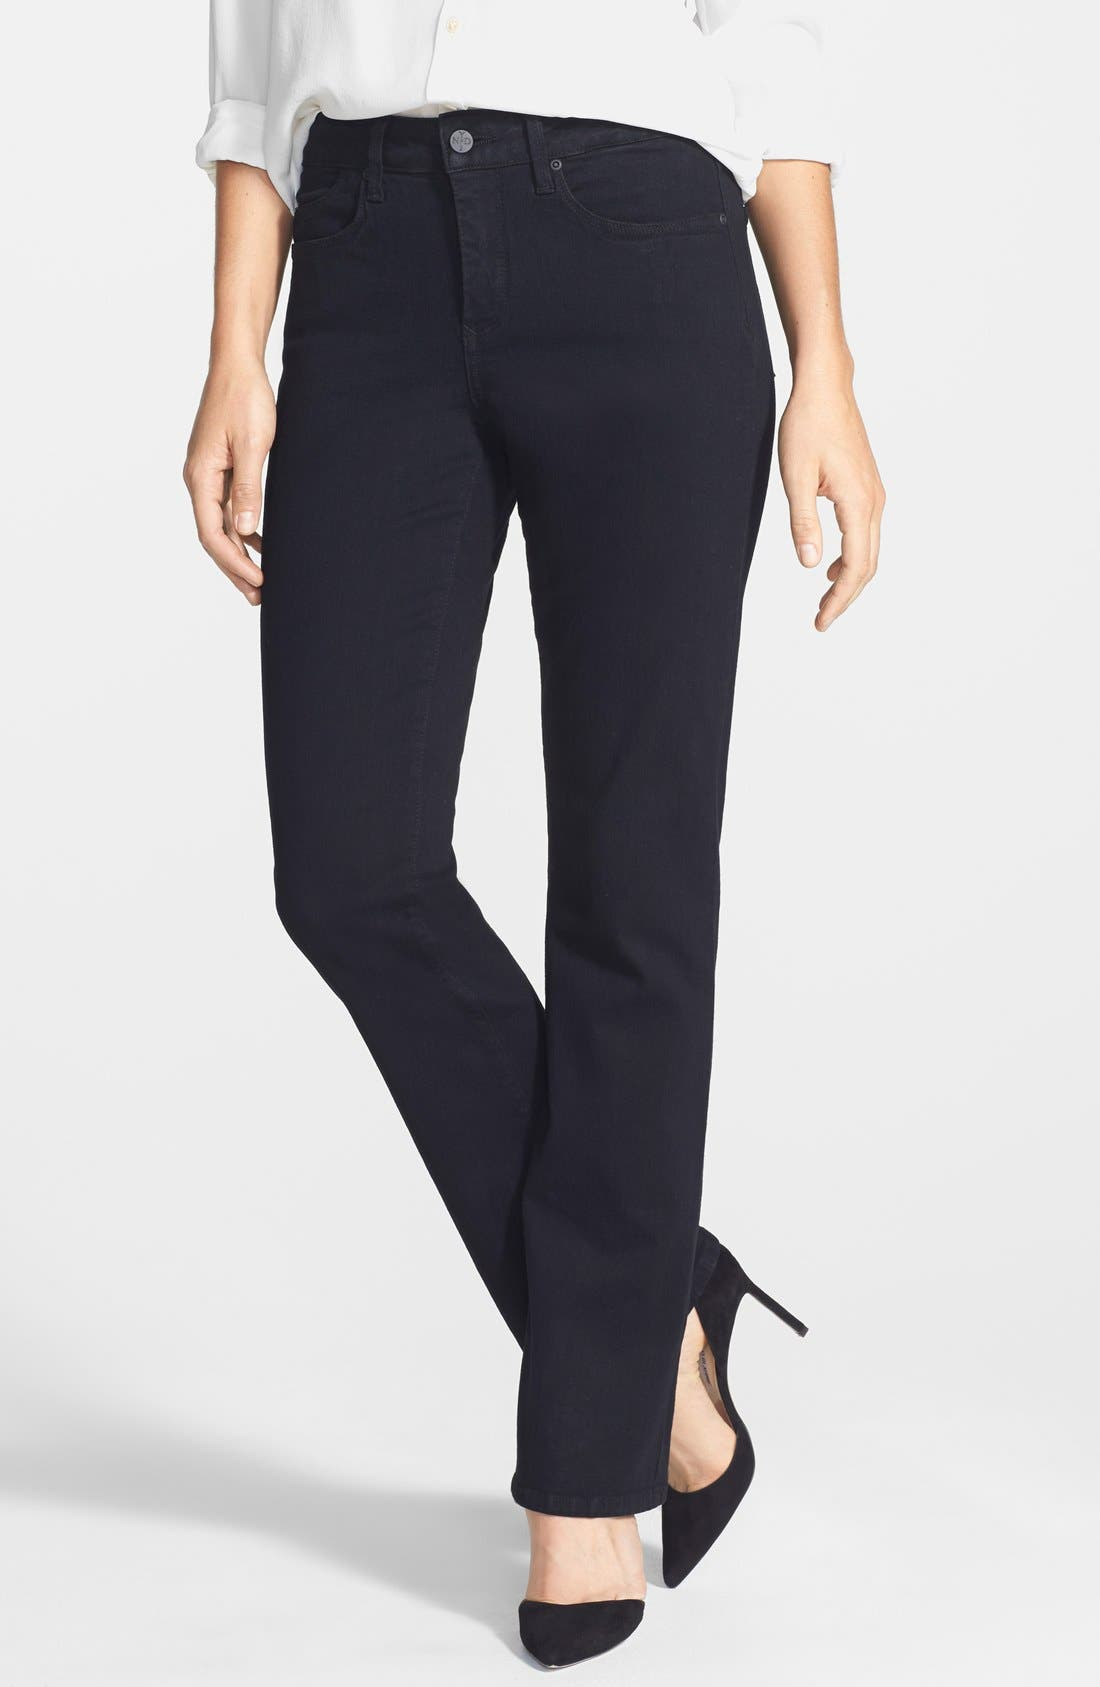 Main Image - NYDJ 'Billie' Stretch Mini Bootcut Jeans (Black) (Regular & Petite)